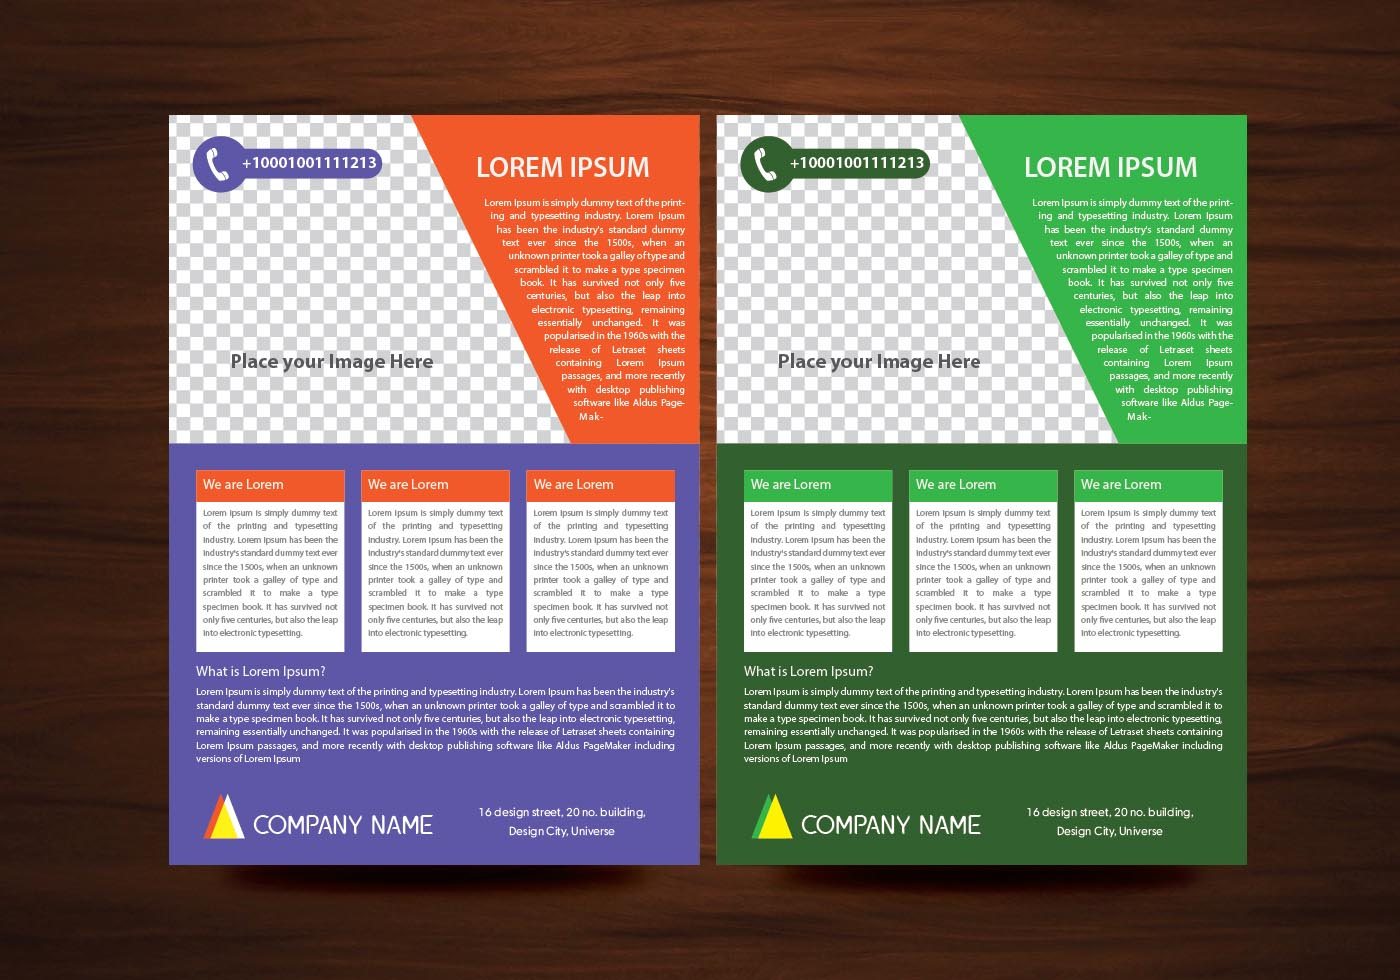 Vector brochure flyer design layout template in a4 size download free vector art stock for Free flier design